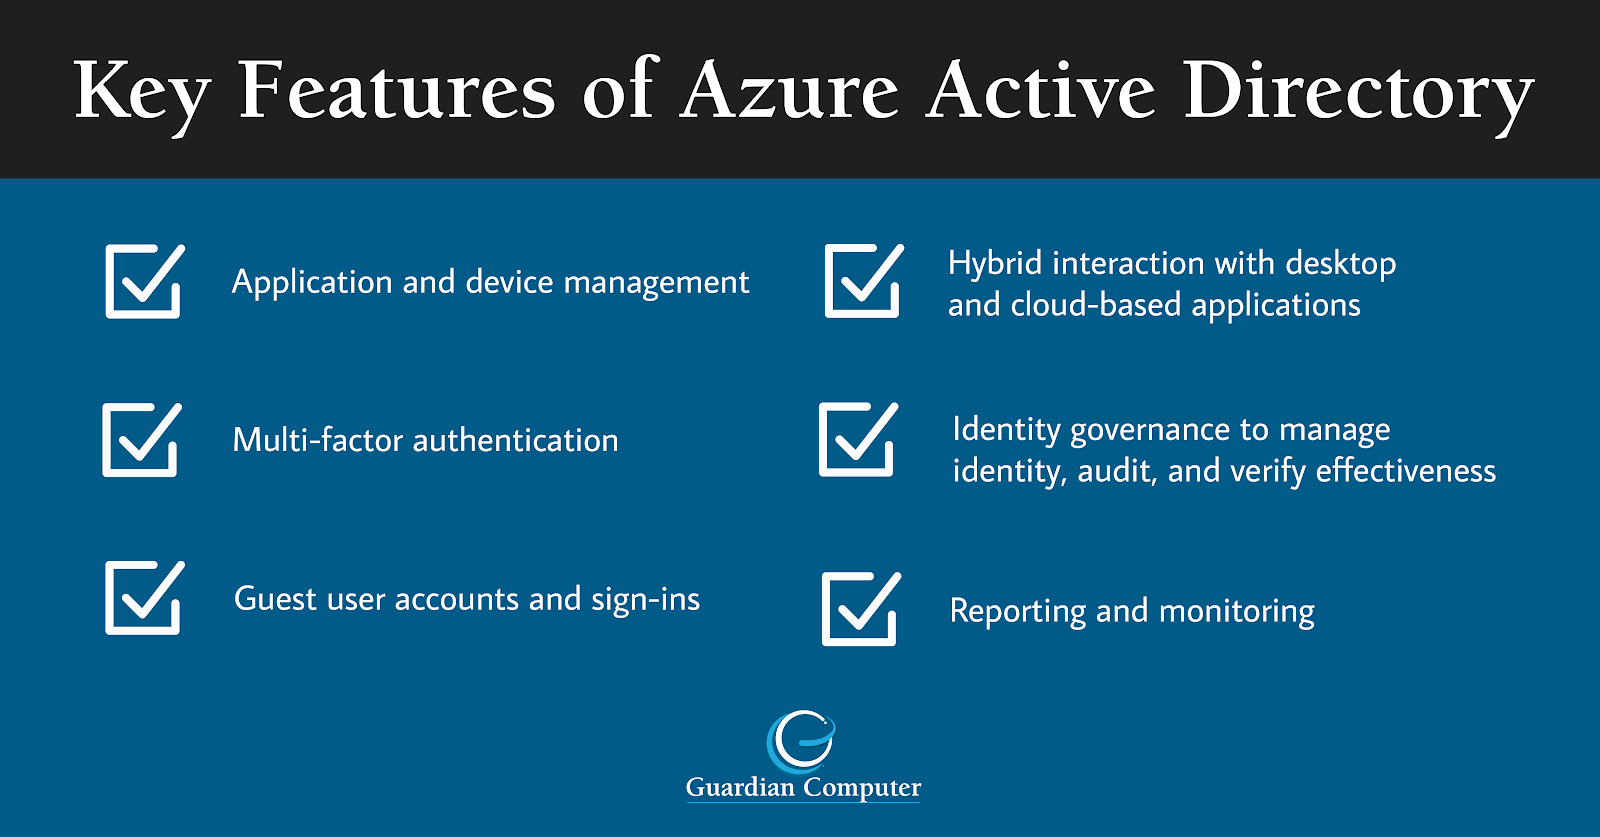 Consider the key features of Azure Active Directory in this infographic when deciding should your business migrate from G Suite to Microsoft 365.